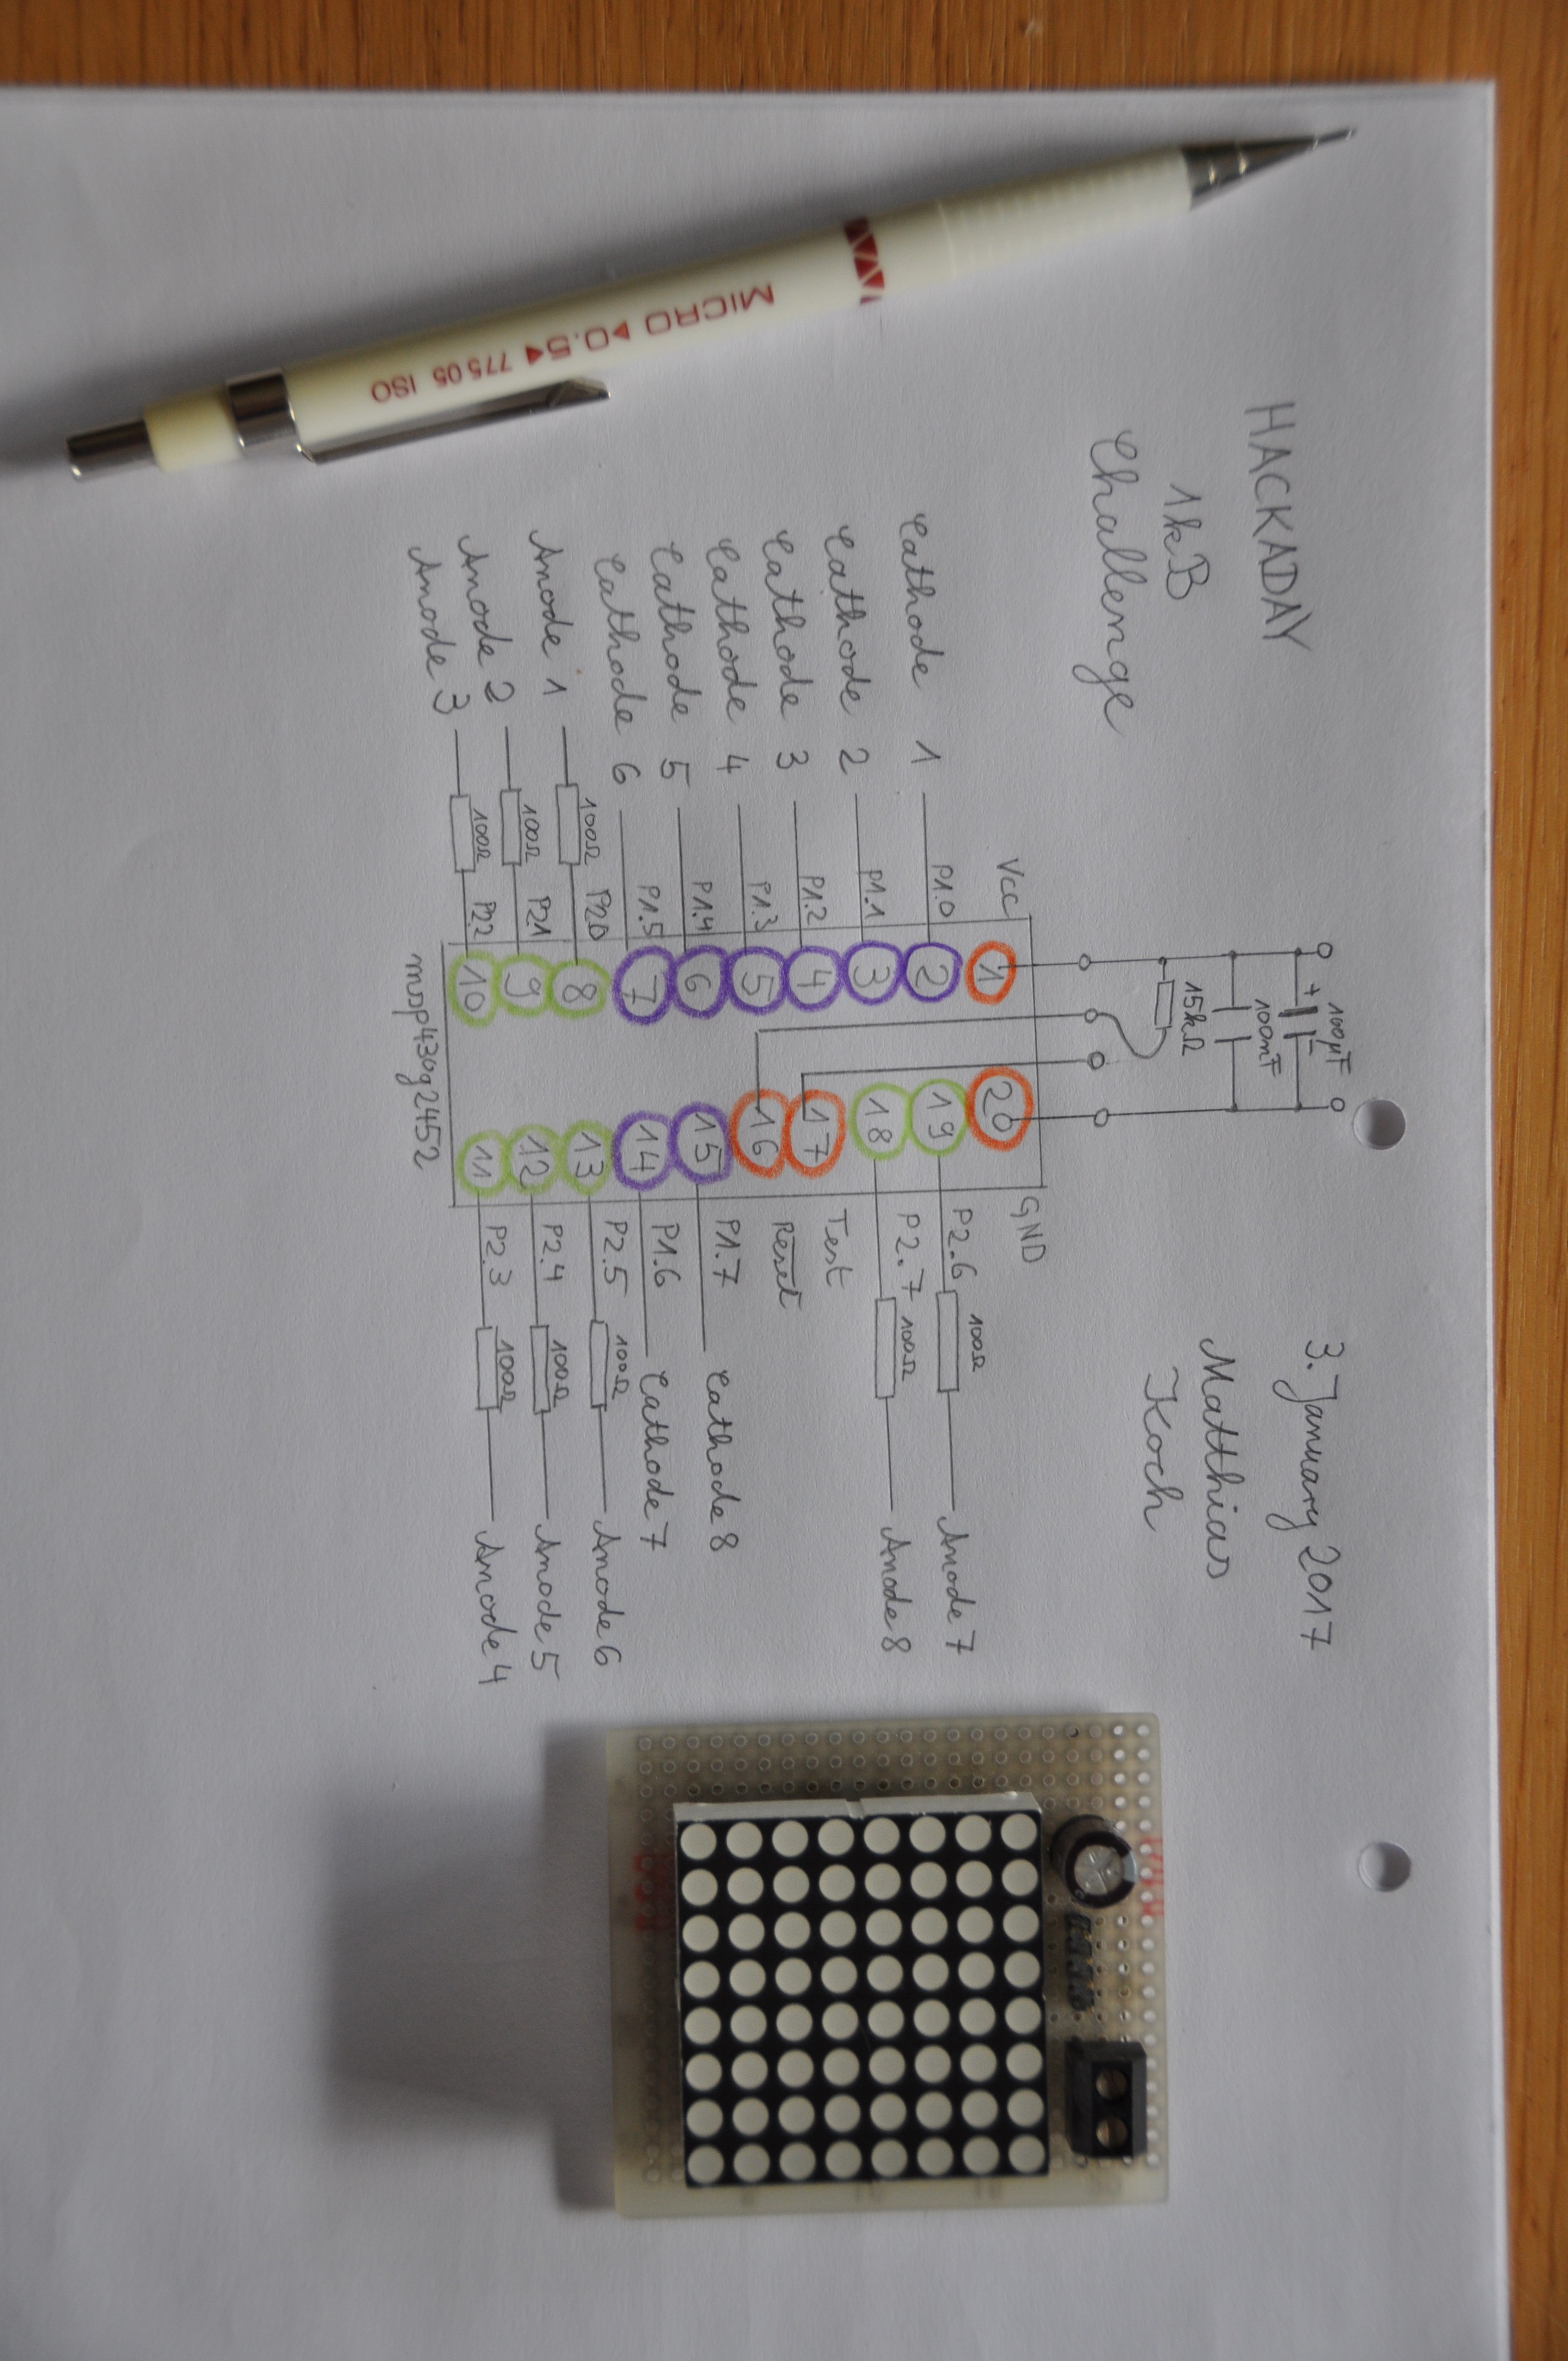 LEDs as photodiodes for 1 kB challenge | Details | Hackaday io